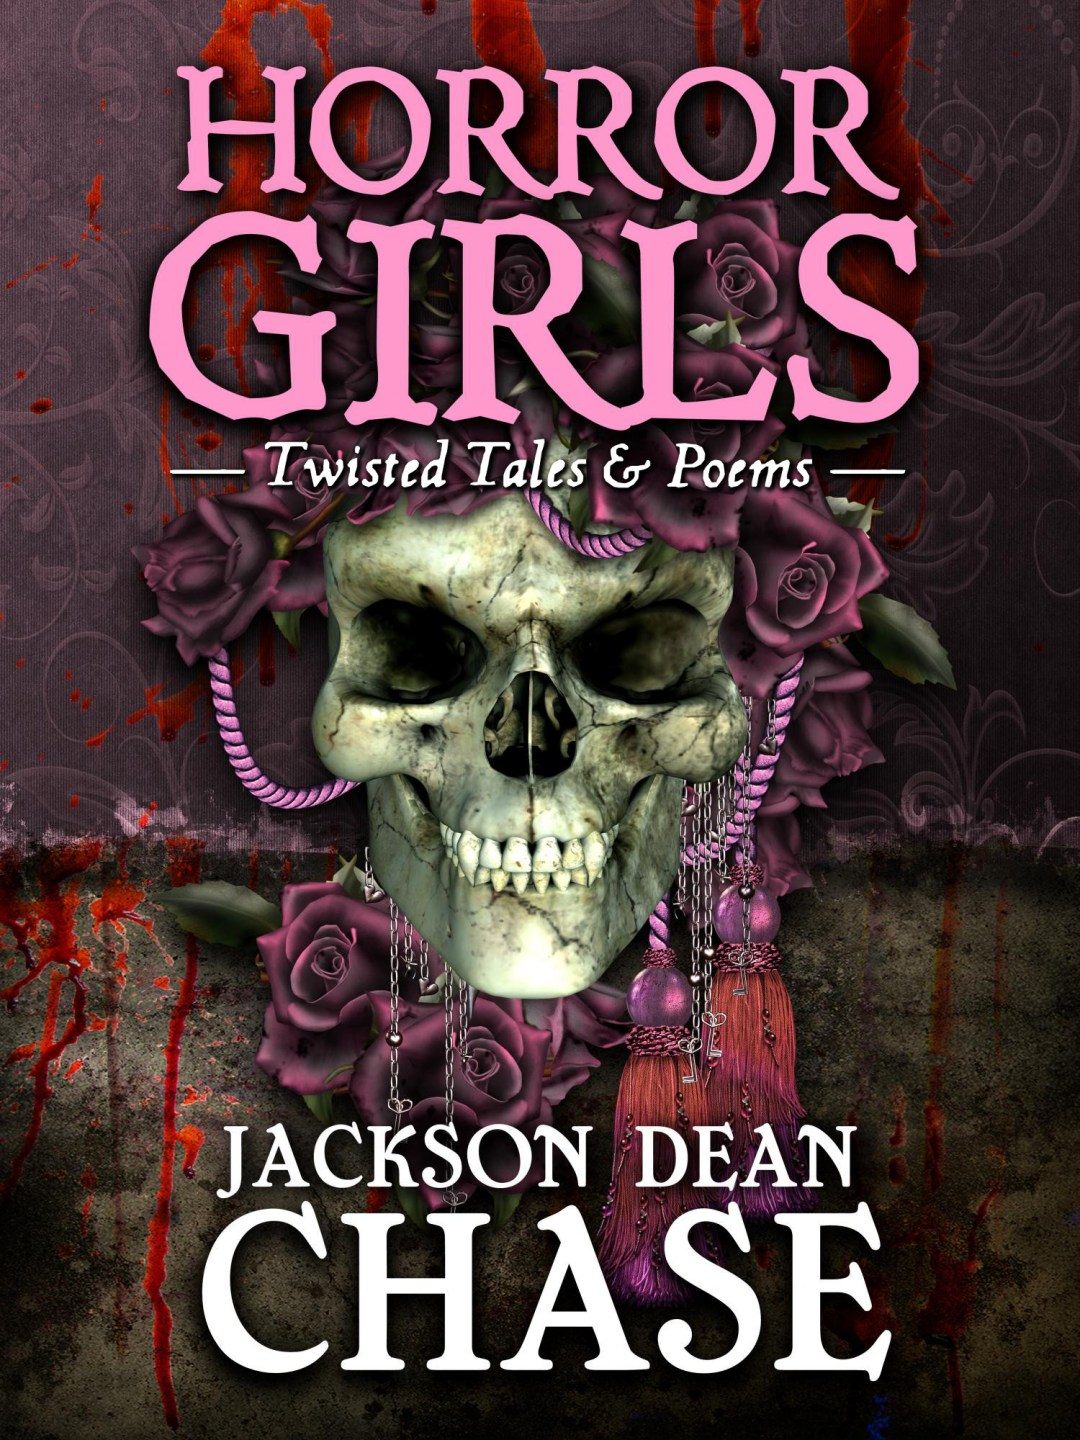 Horror Girls: Twisted Tales & Poems by Jackson Dean Chase